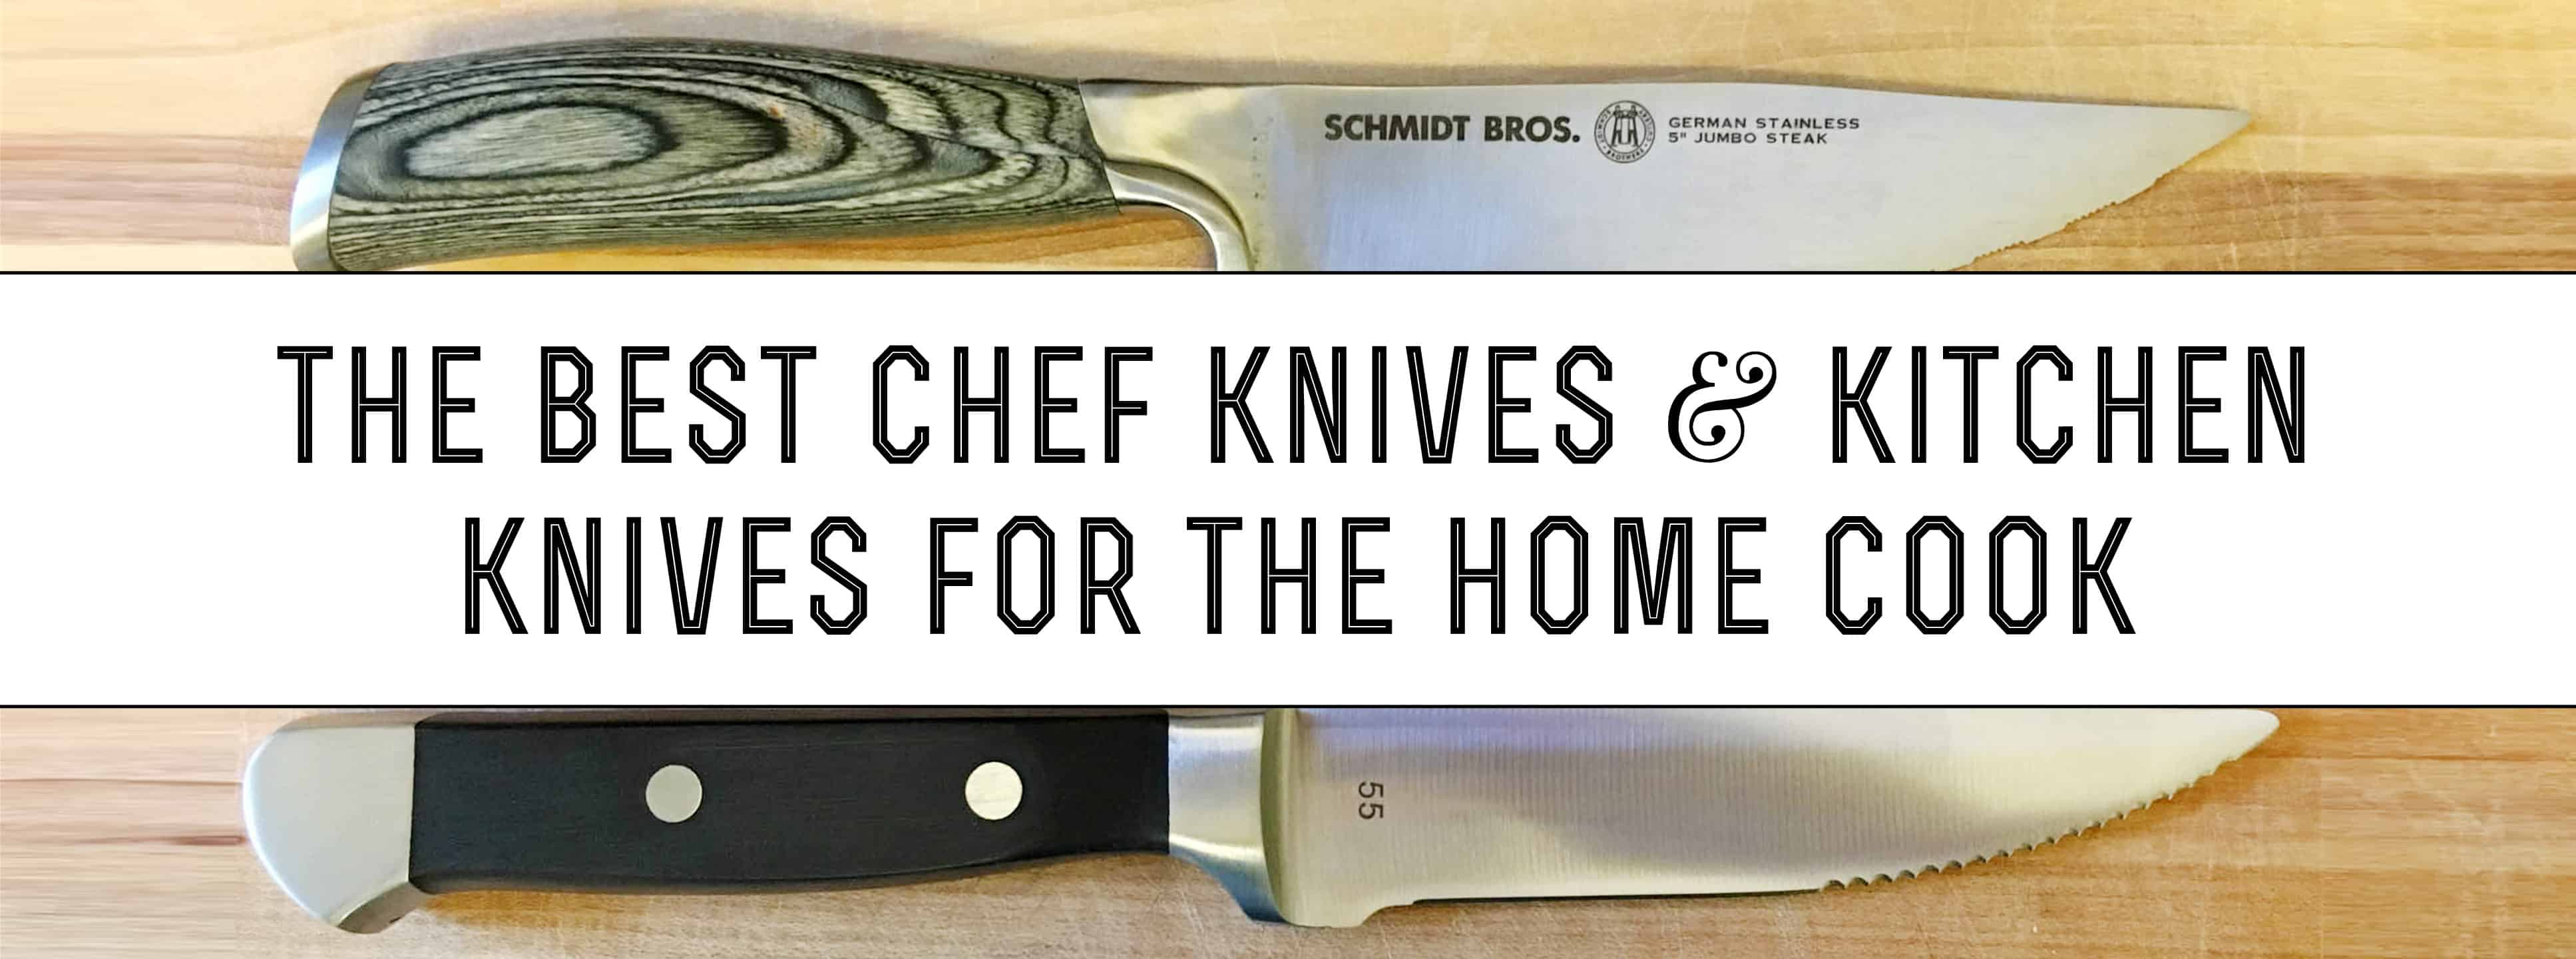 best kitchen knives the best chef knives and kitchen knives for the home cook gentleman s gazette 4624